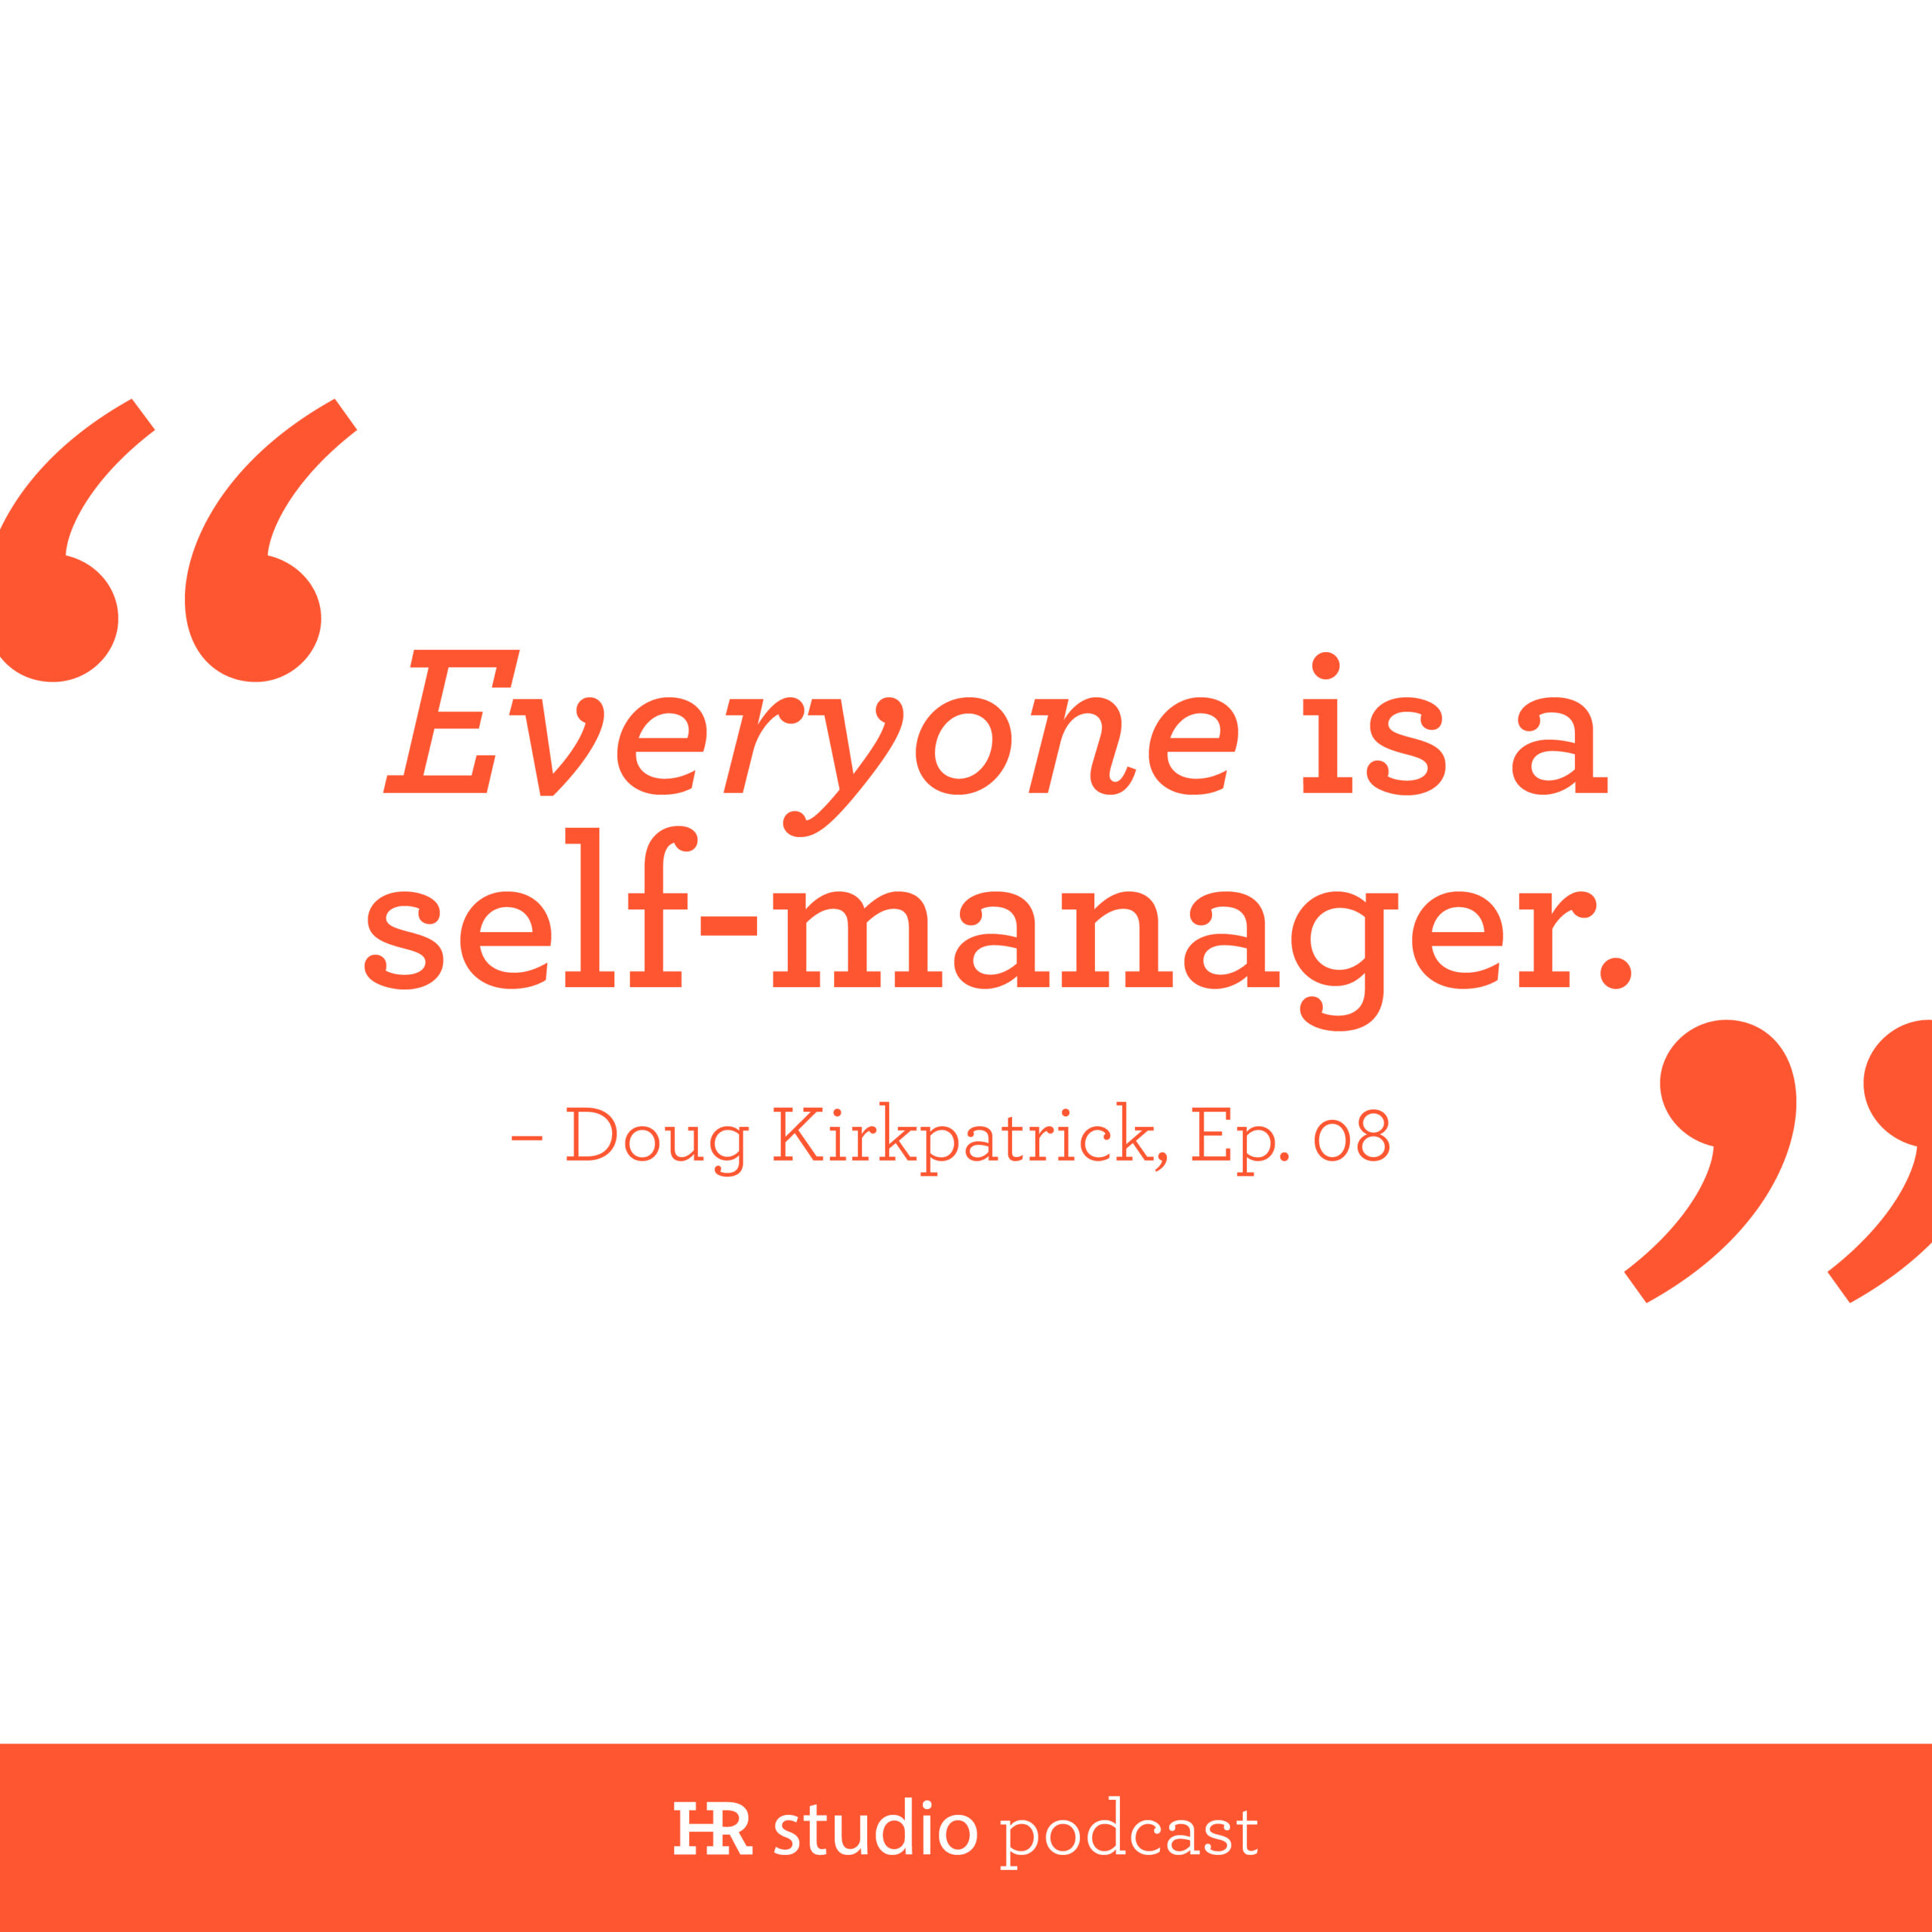 HR Studio Podcast: A New Transformative Way of Leadership